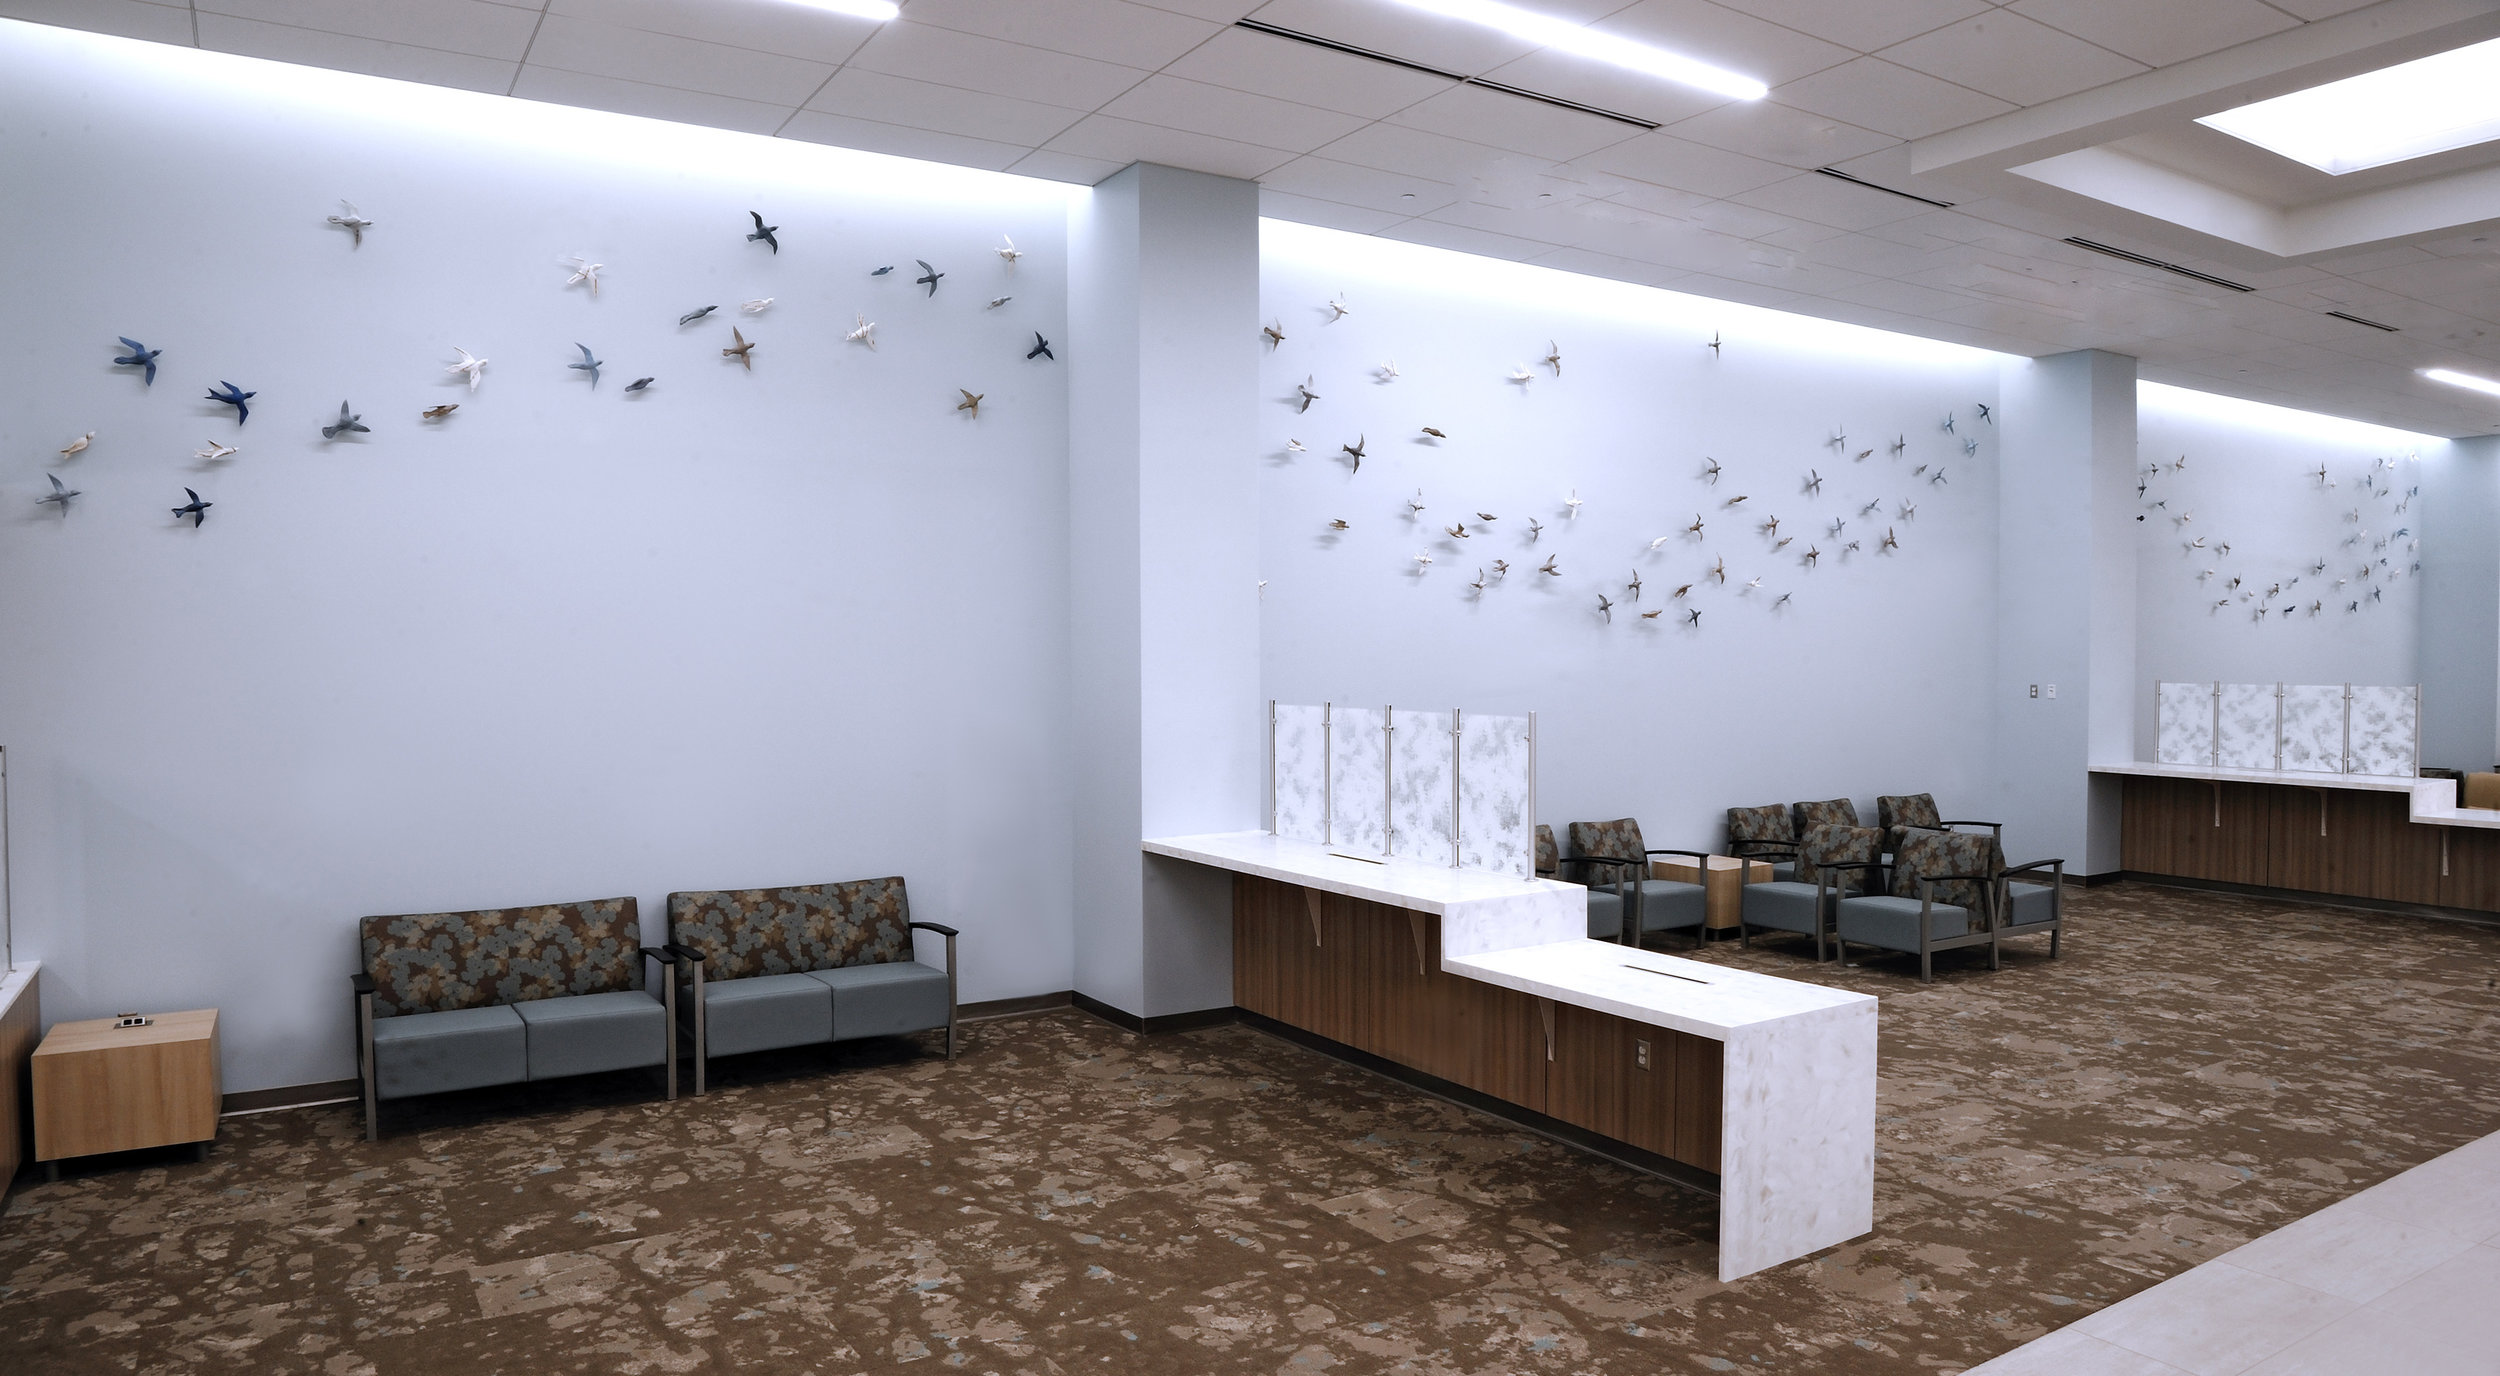 Murmuration , 10'x74', multiple clay birds across 3 walls. Photo by Gregory Staley.